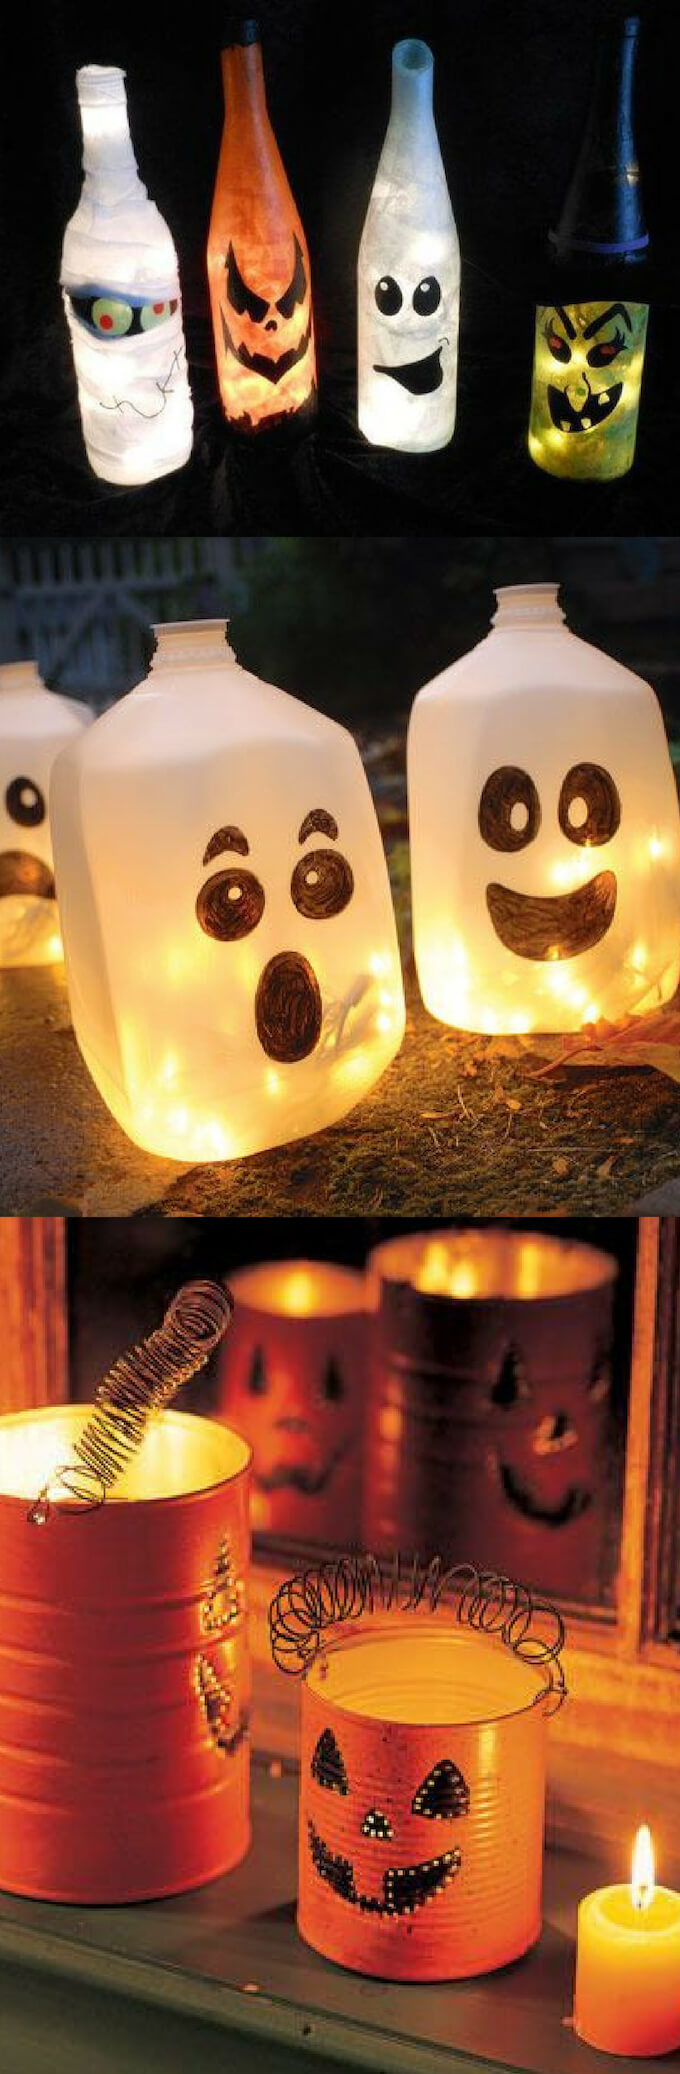 Reuse Halloween decorations | How to Have a Green Halloween: Ideas to Make This Halloween More Eco-Friendly